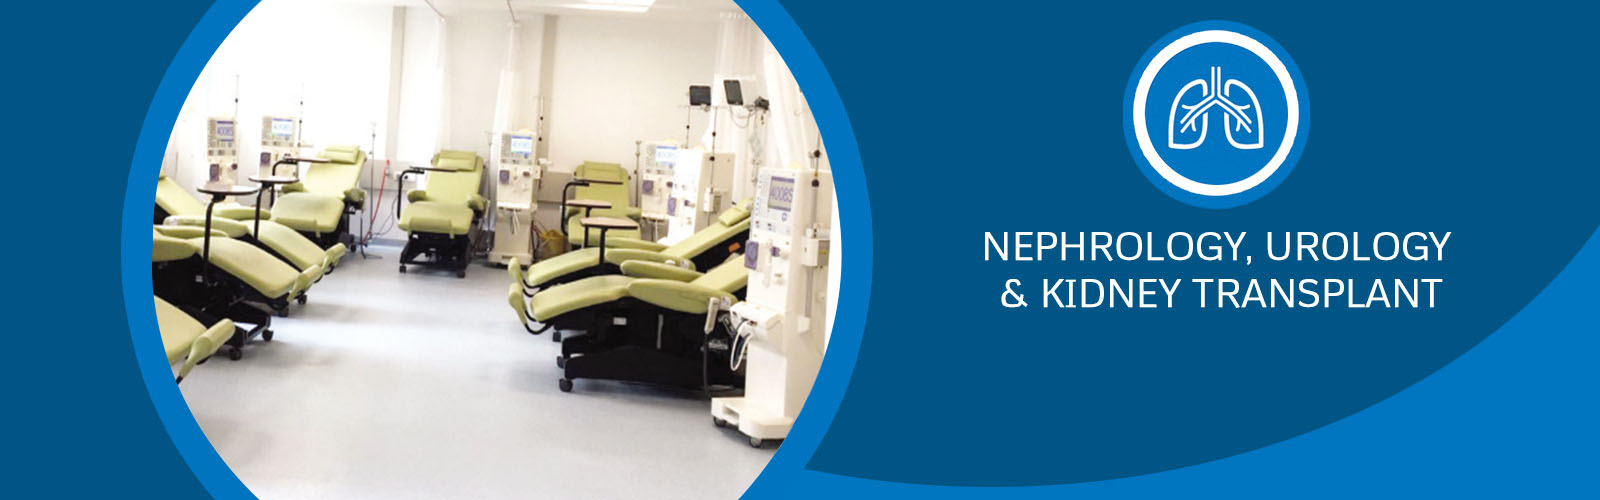 Urology and Nephrology- Urinary and Renal Problem solutions